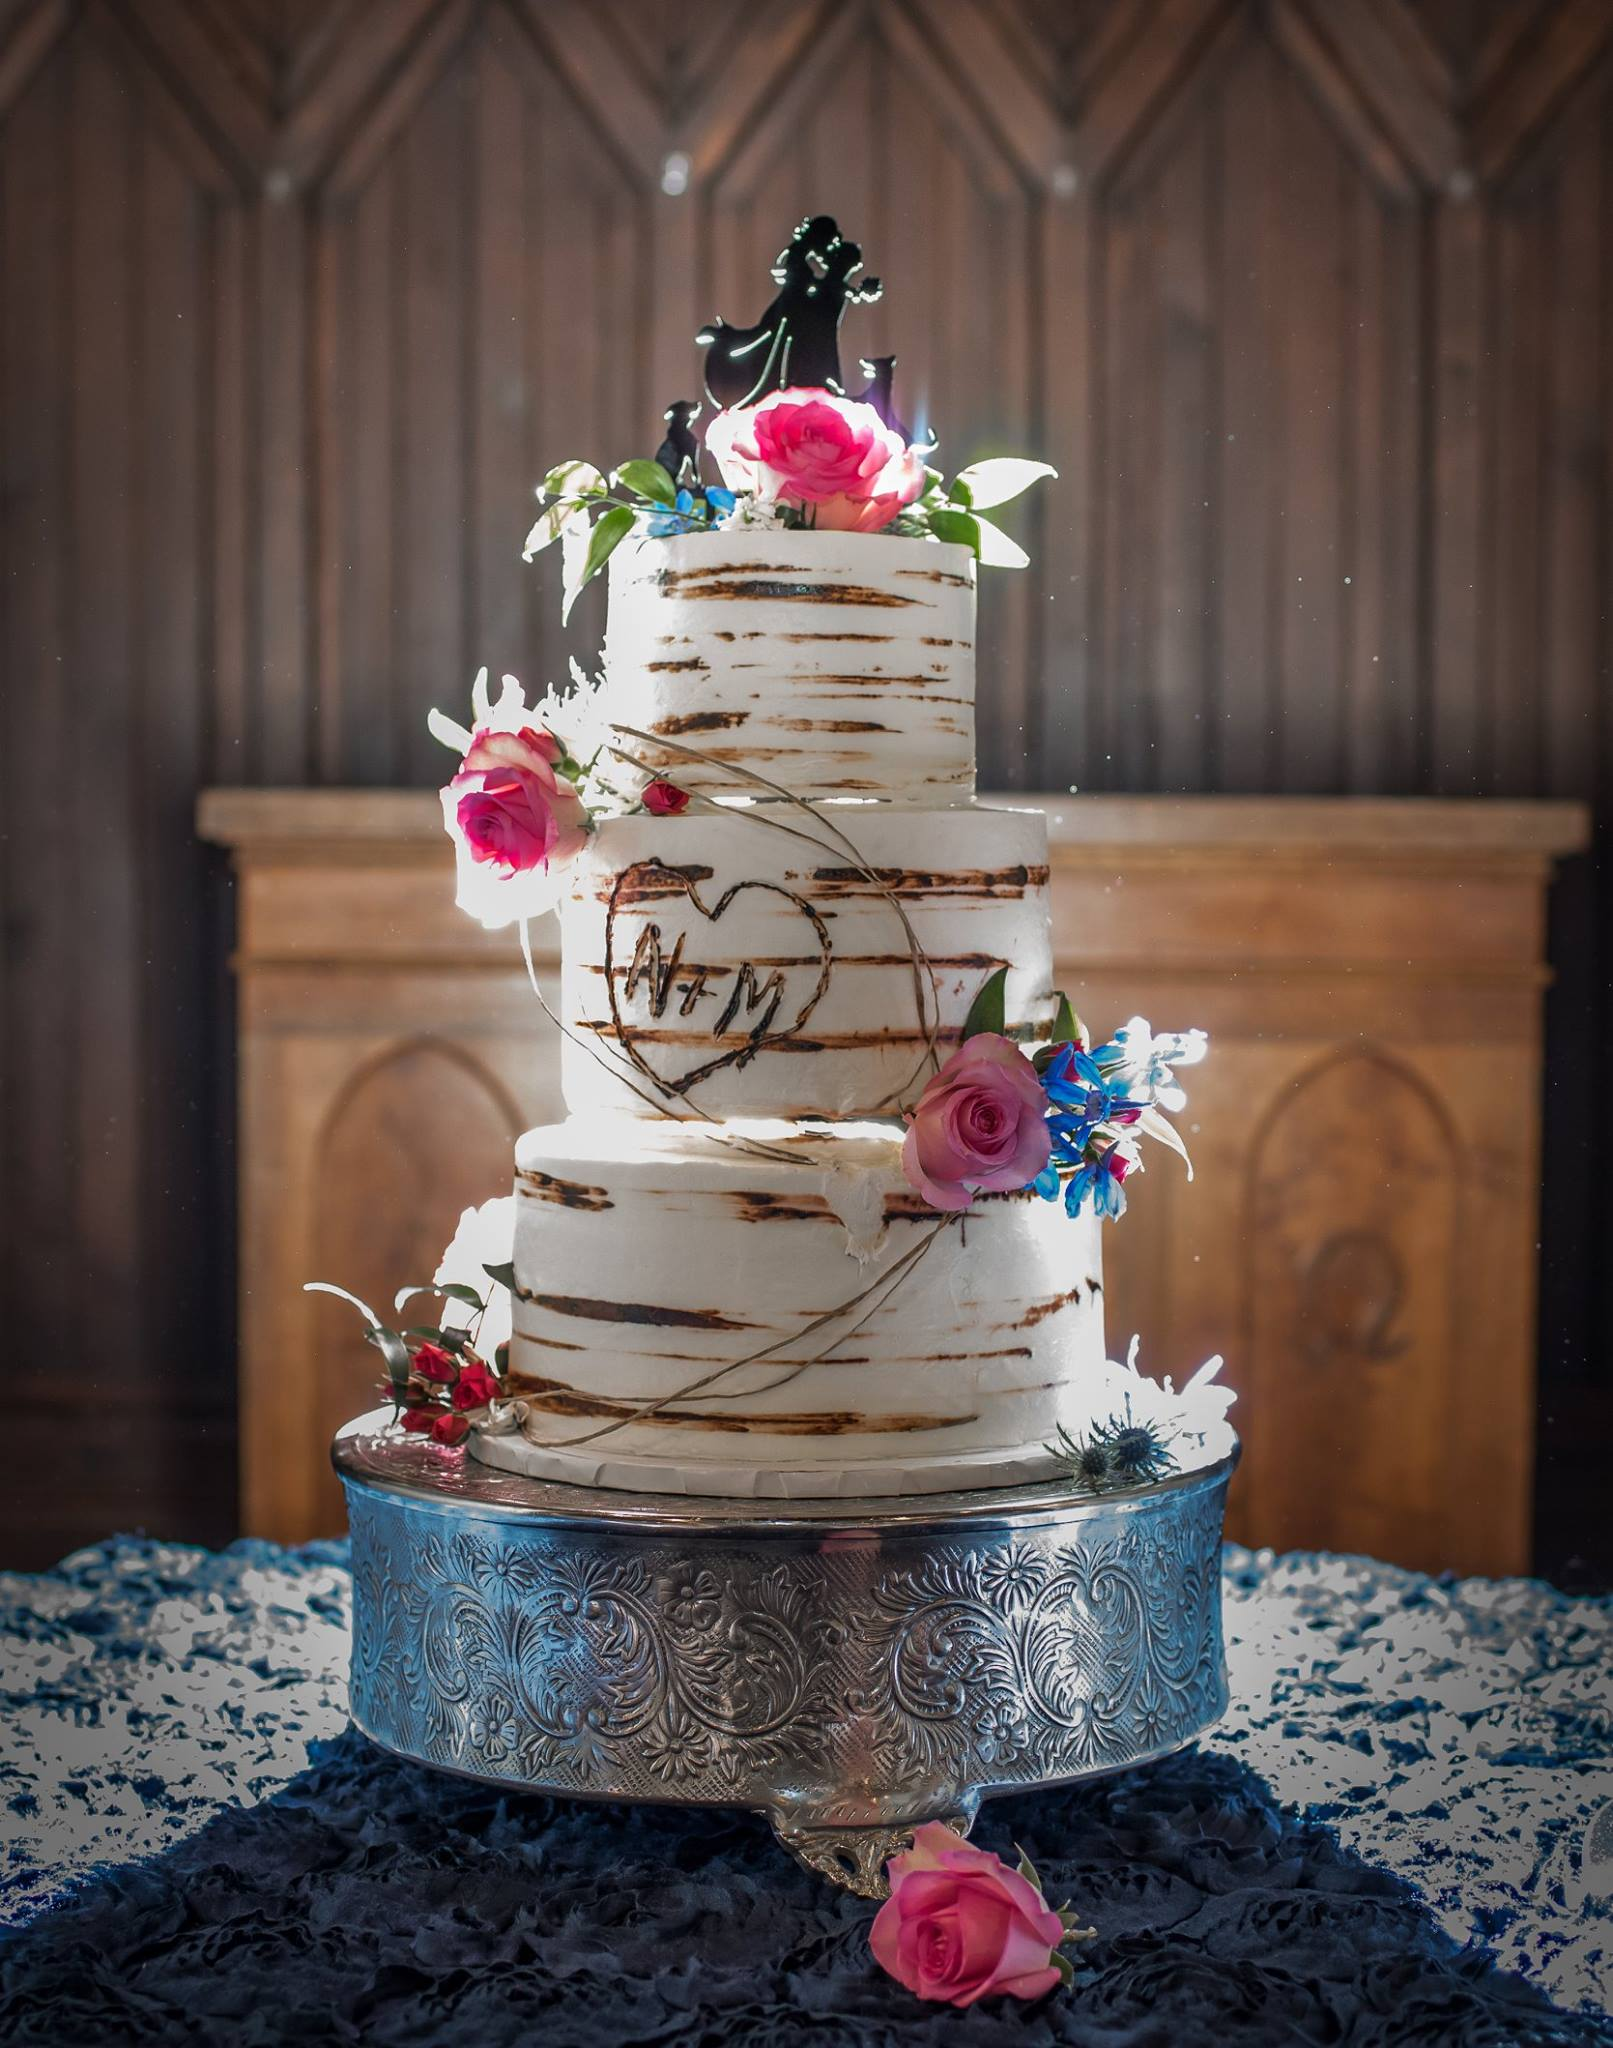 Wedding Cake in Raleigh NC.jpg